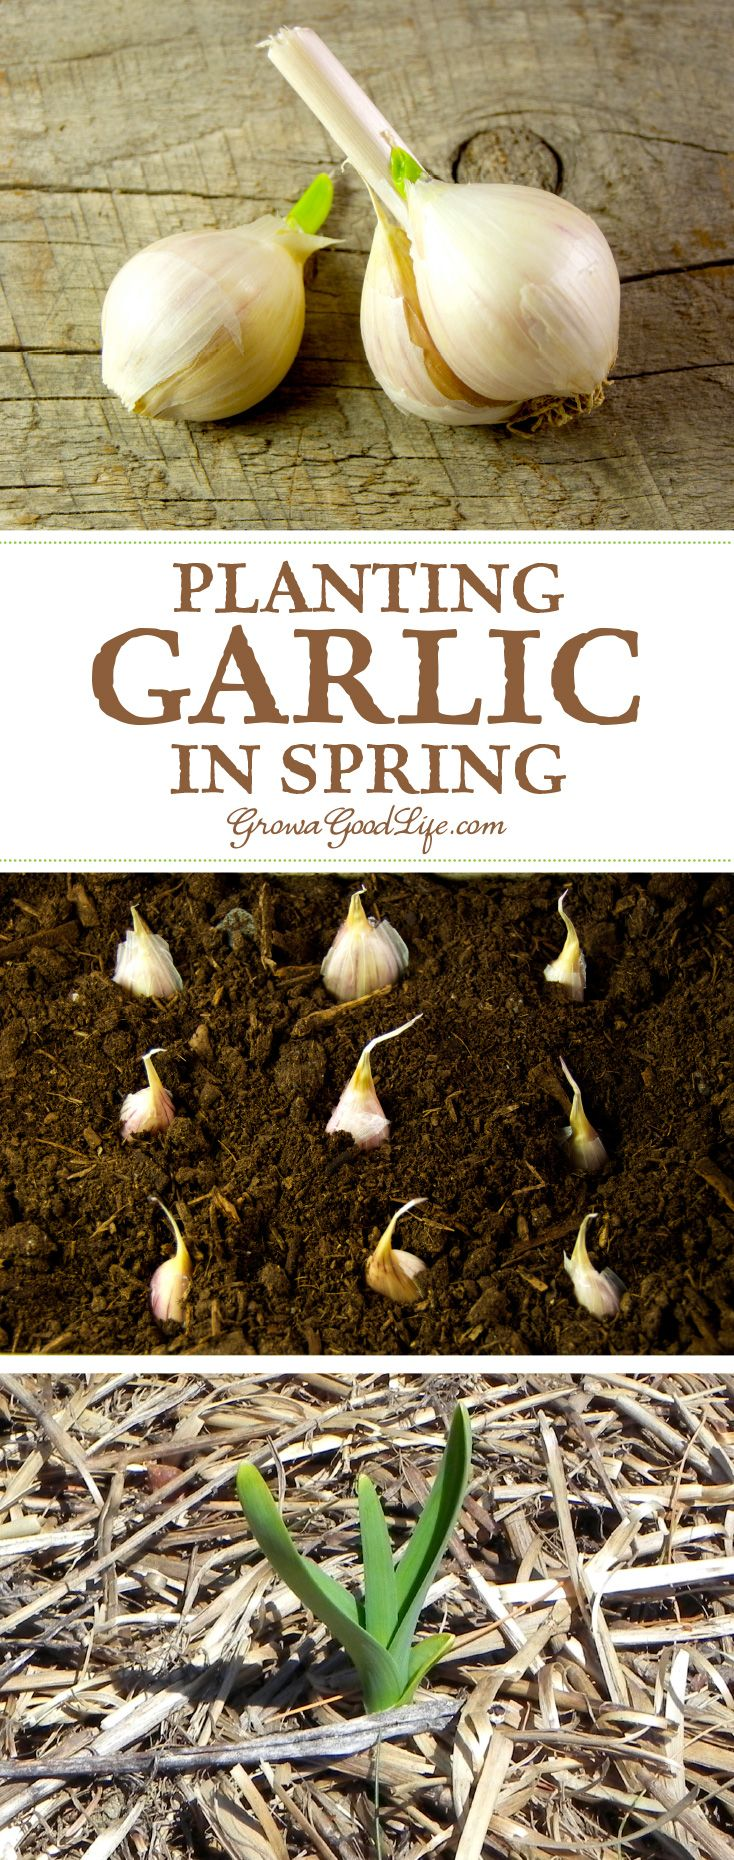 Missed your chance to plant garlic last fall? Has your winter storage garlic sprouted? Try planting spring garlic. You may not get large cloves, but you can still enjoy the mild flavor of green garlic.